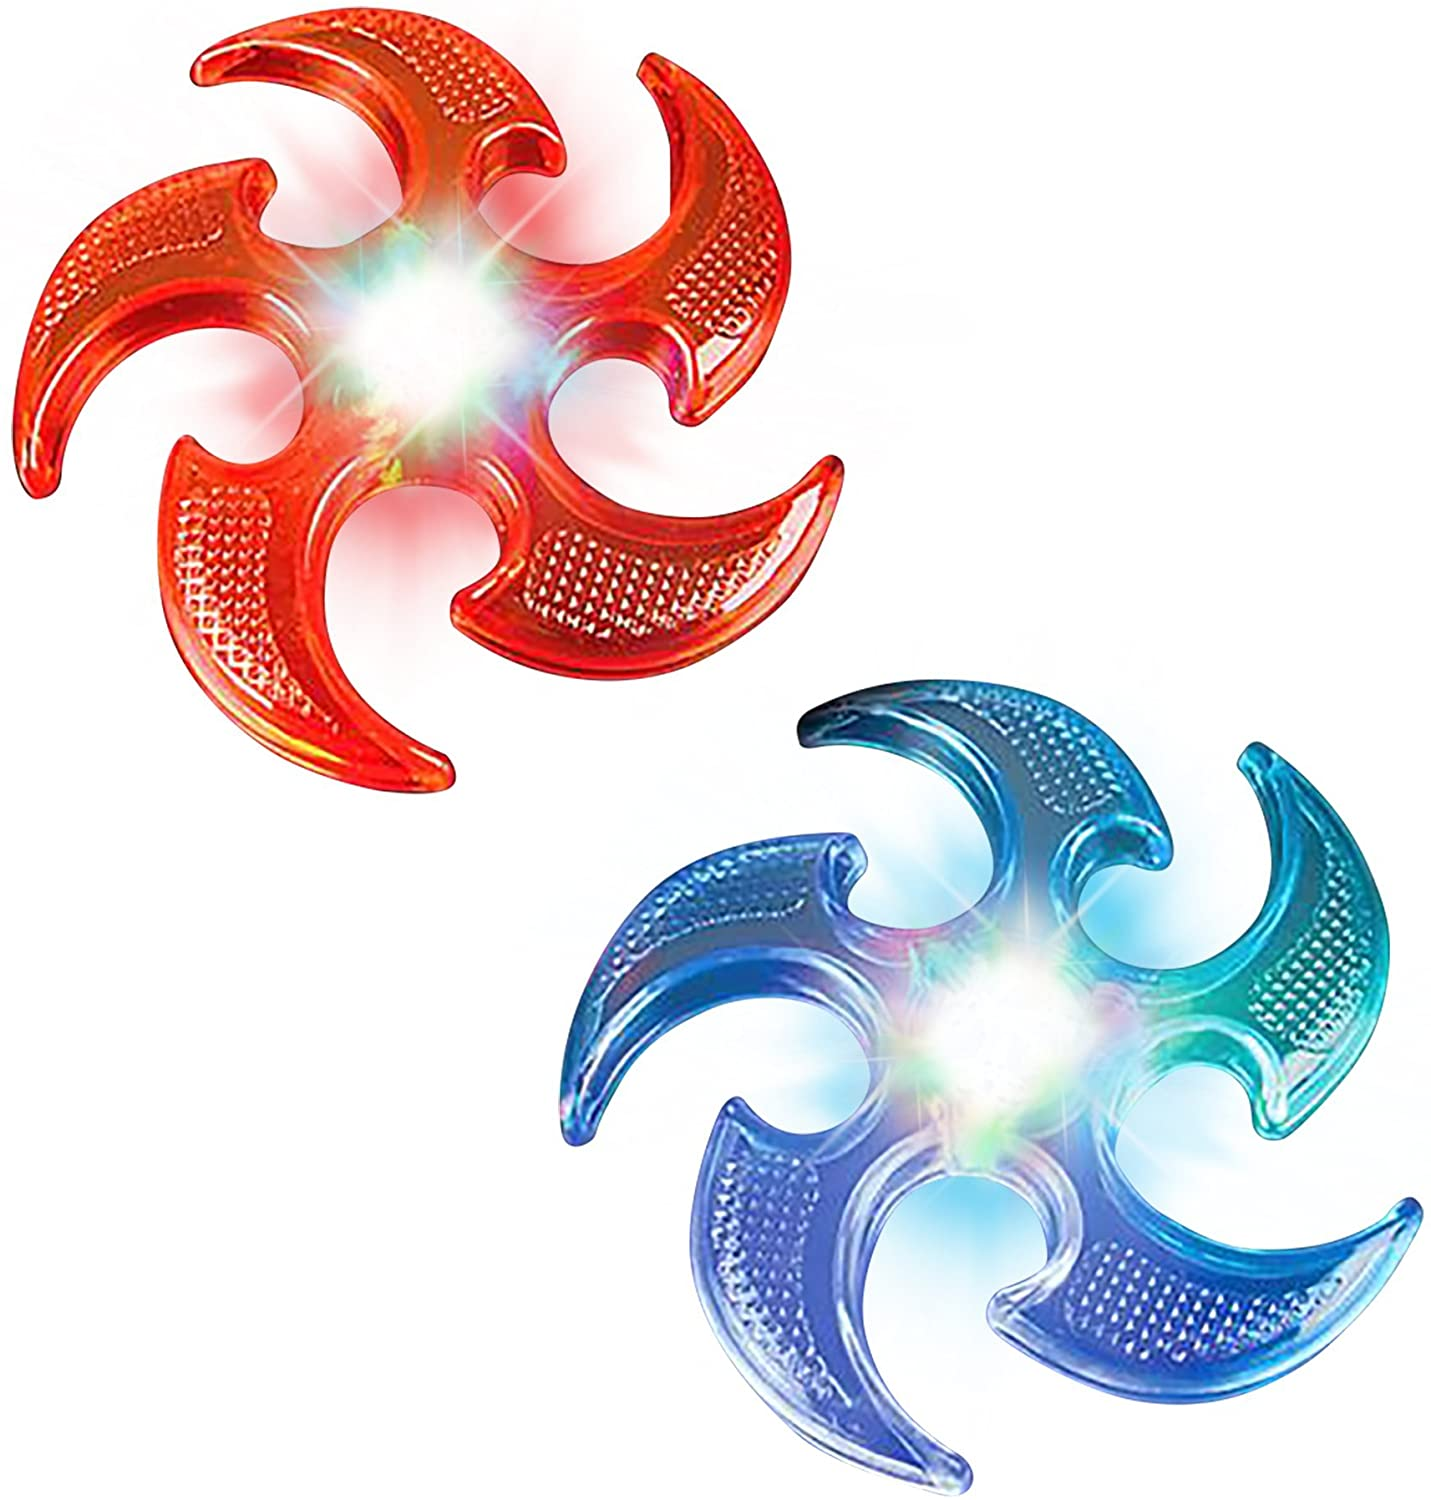 ArtCreativity Light Up Ninja Flyers Set - Pack of 2 - Ninja Star Flying Disc - Includes Batteries - One Red and One Blue - Fun Rubbery Summer Toy - Great Gift for Kids from Moms